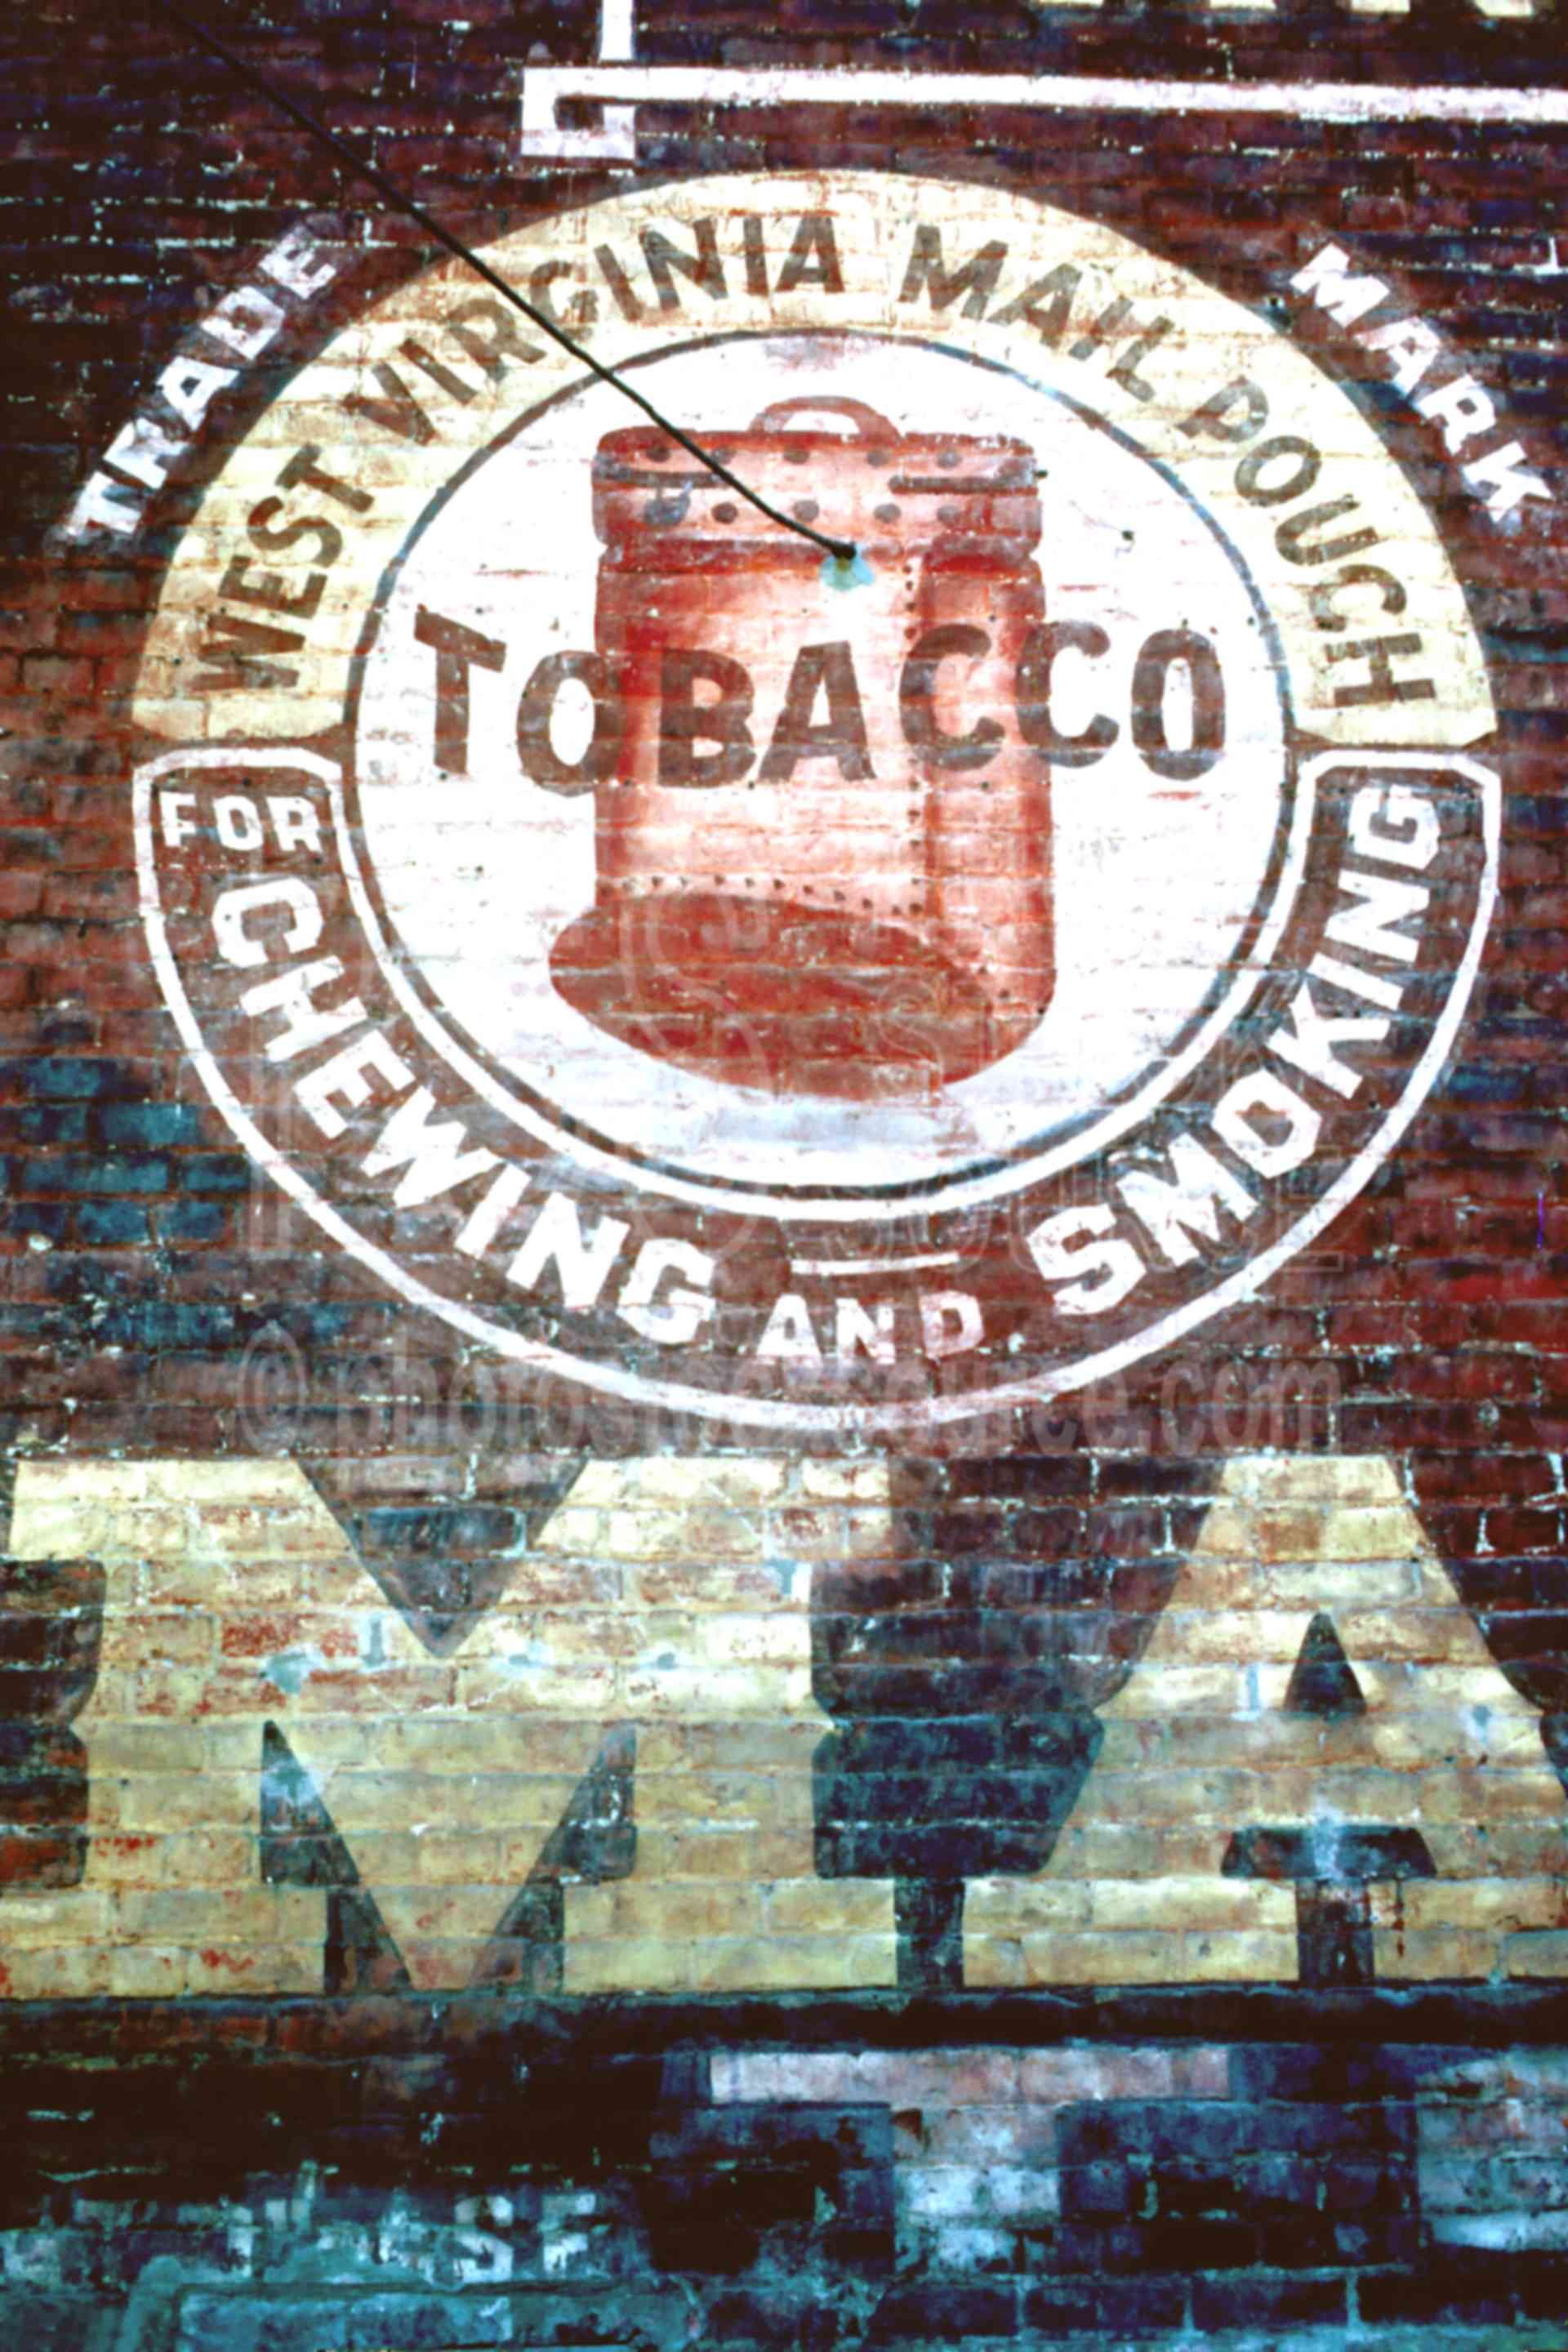 Wall Advertising,advertising,arts,brick,sign,signs symbols flags,architecture